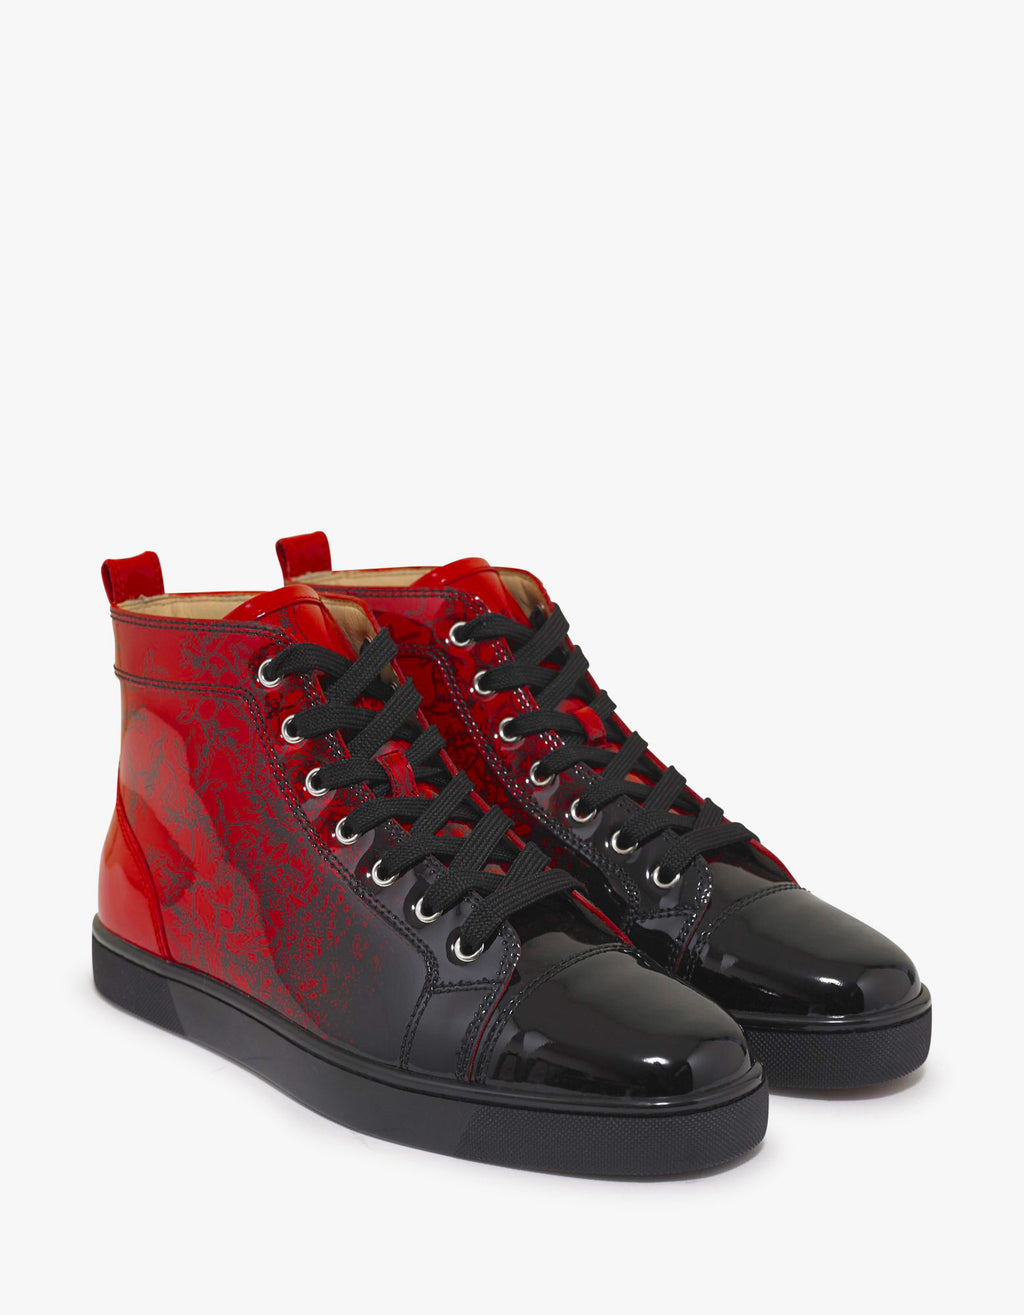 Louis Flat Red Degraloubi Patent High Top Trainers